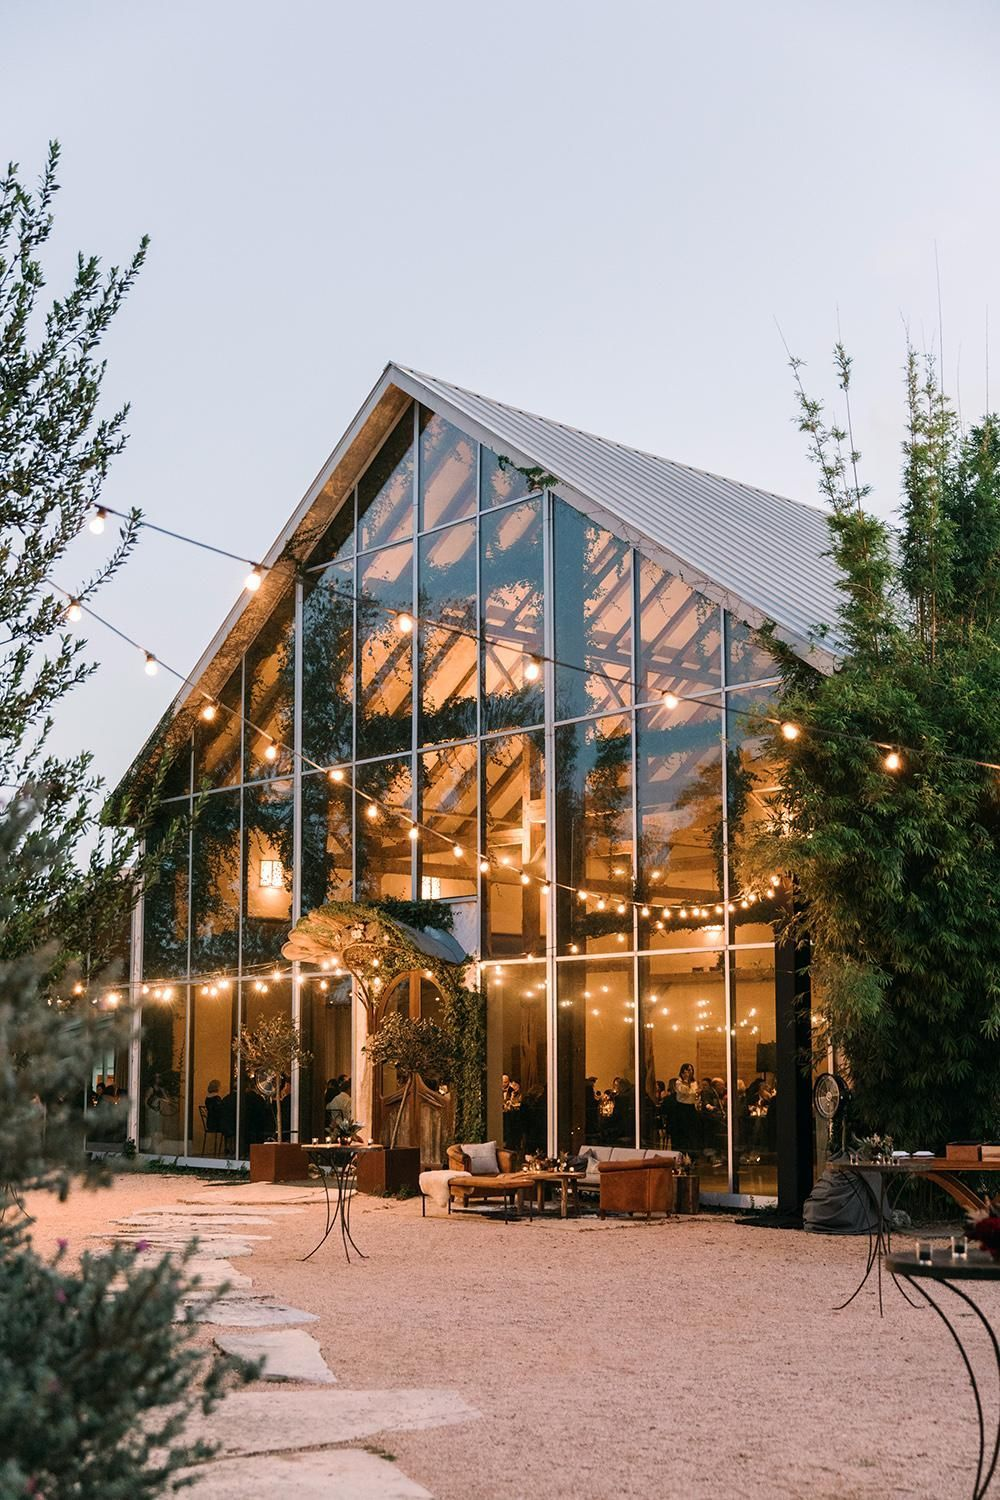 Planning A Rustic Wedding Check Out These Gorgeous Barn Wedding Venues Wedding Venues Texas Barn Wedding Venue Outdoor Wedding Venues